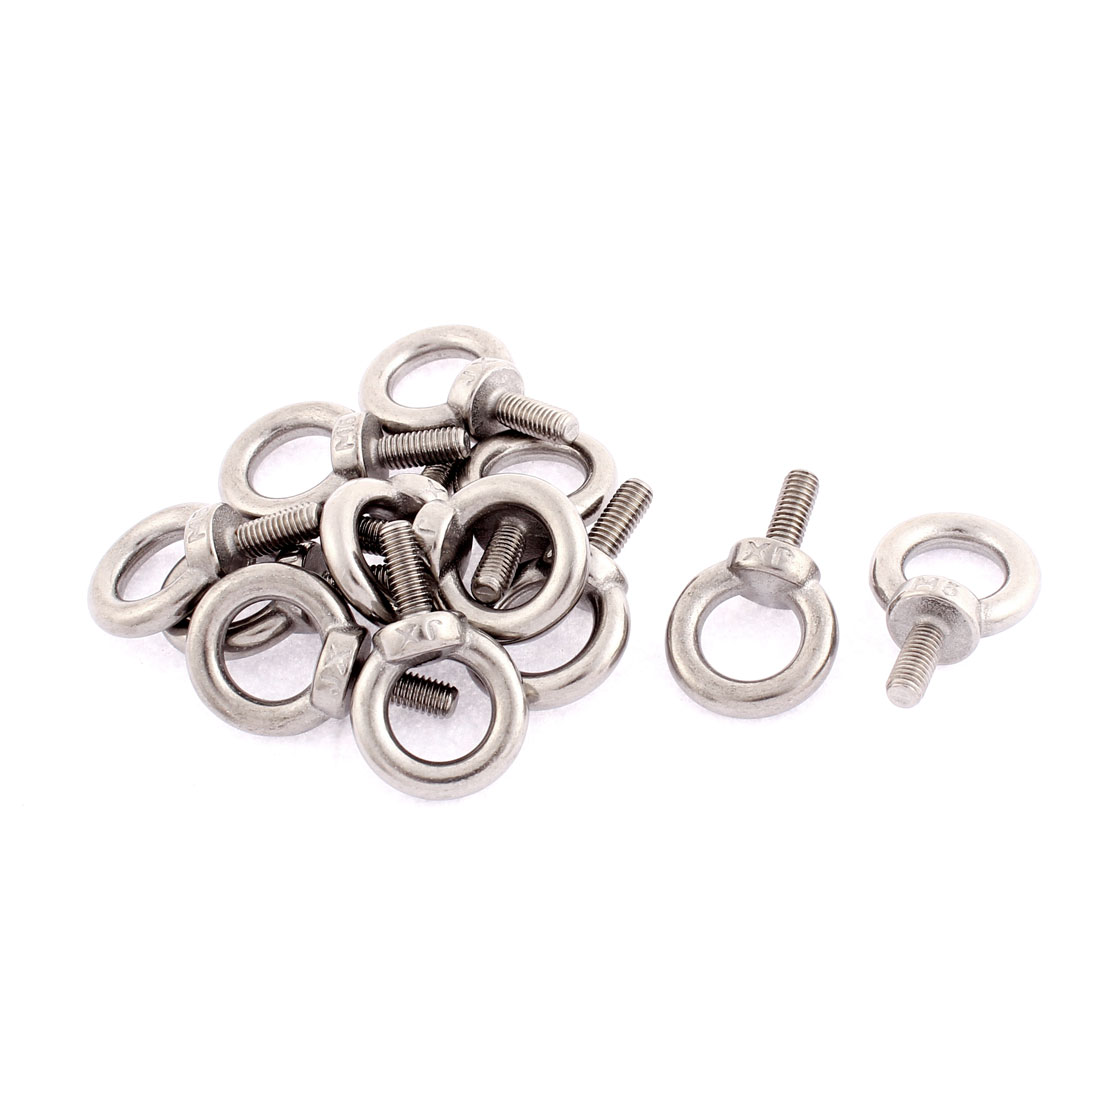 M5 x 12mm Metric Thread Machinery Shoulder Lifting Eye Bolt Ring 12pcs